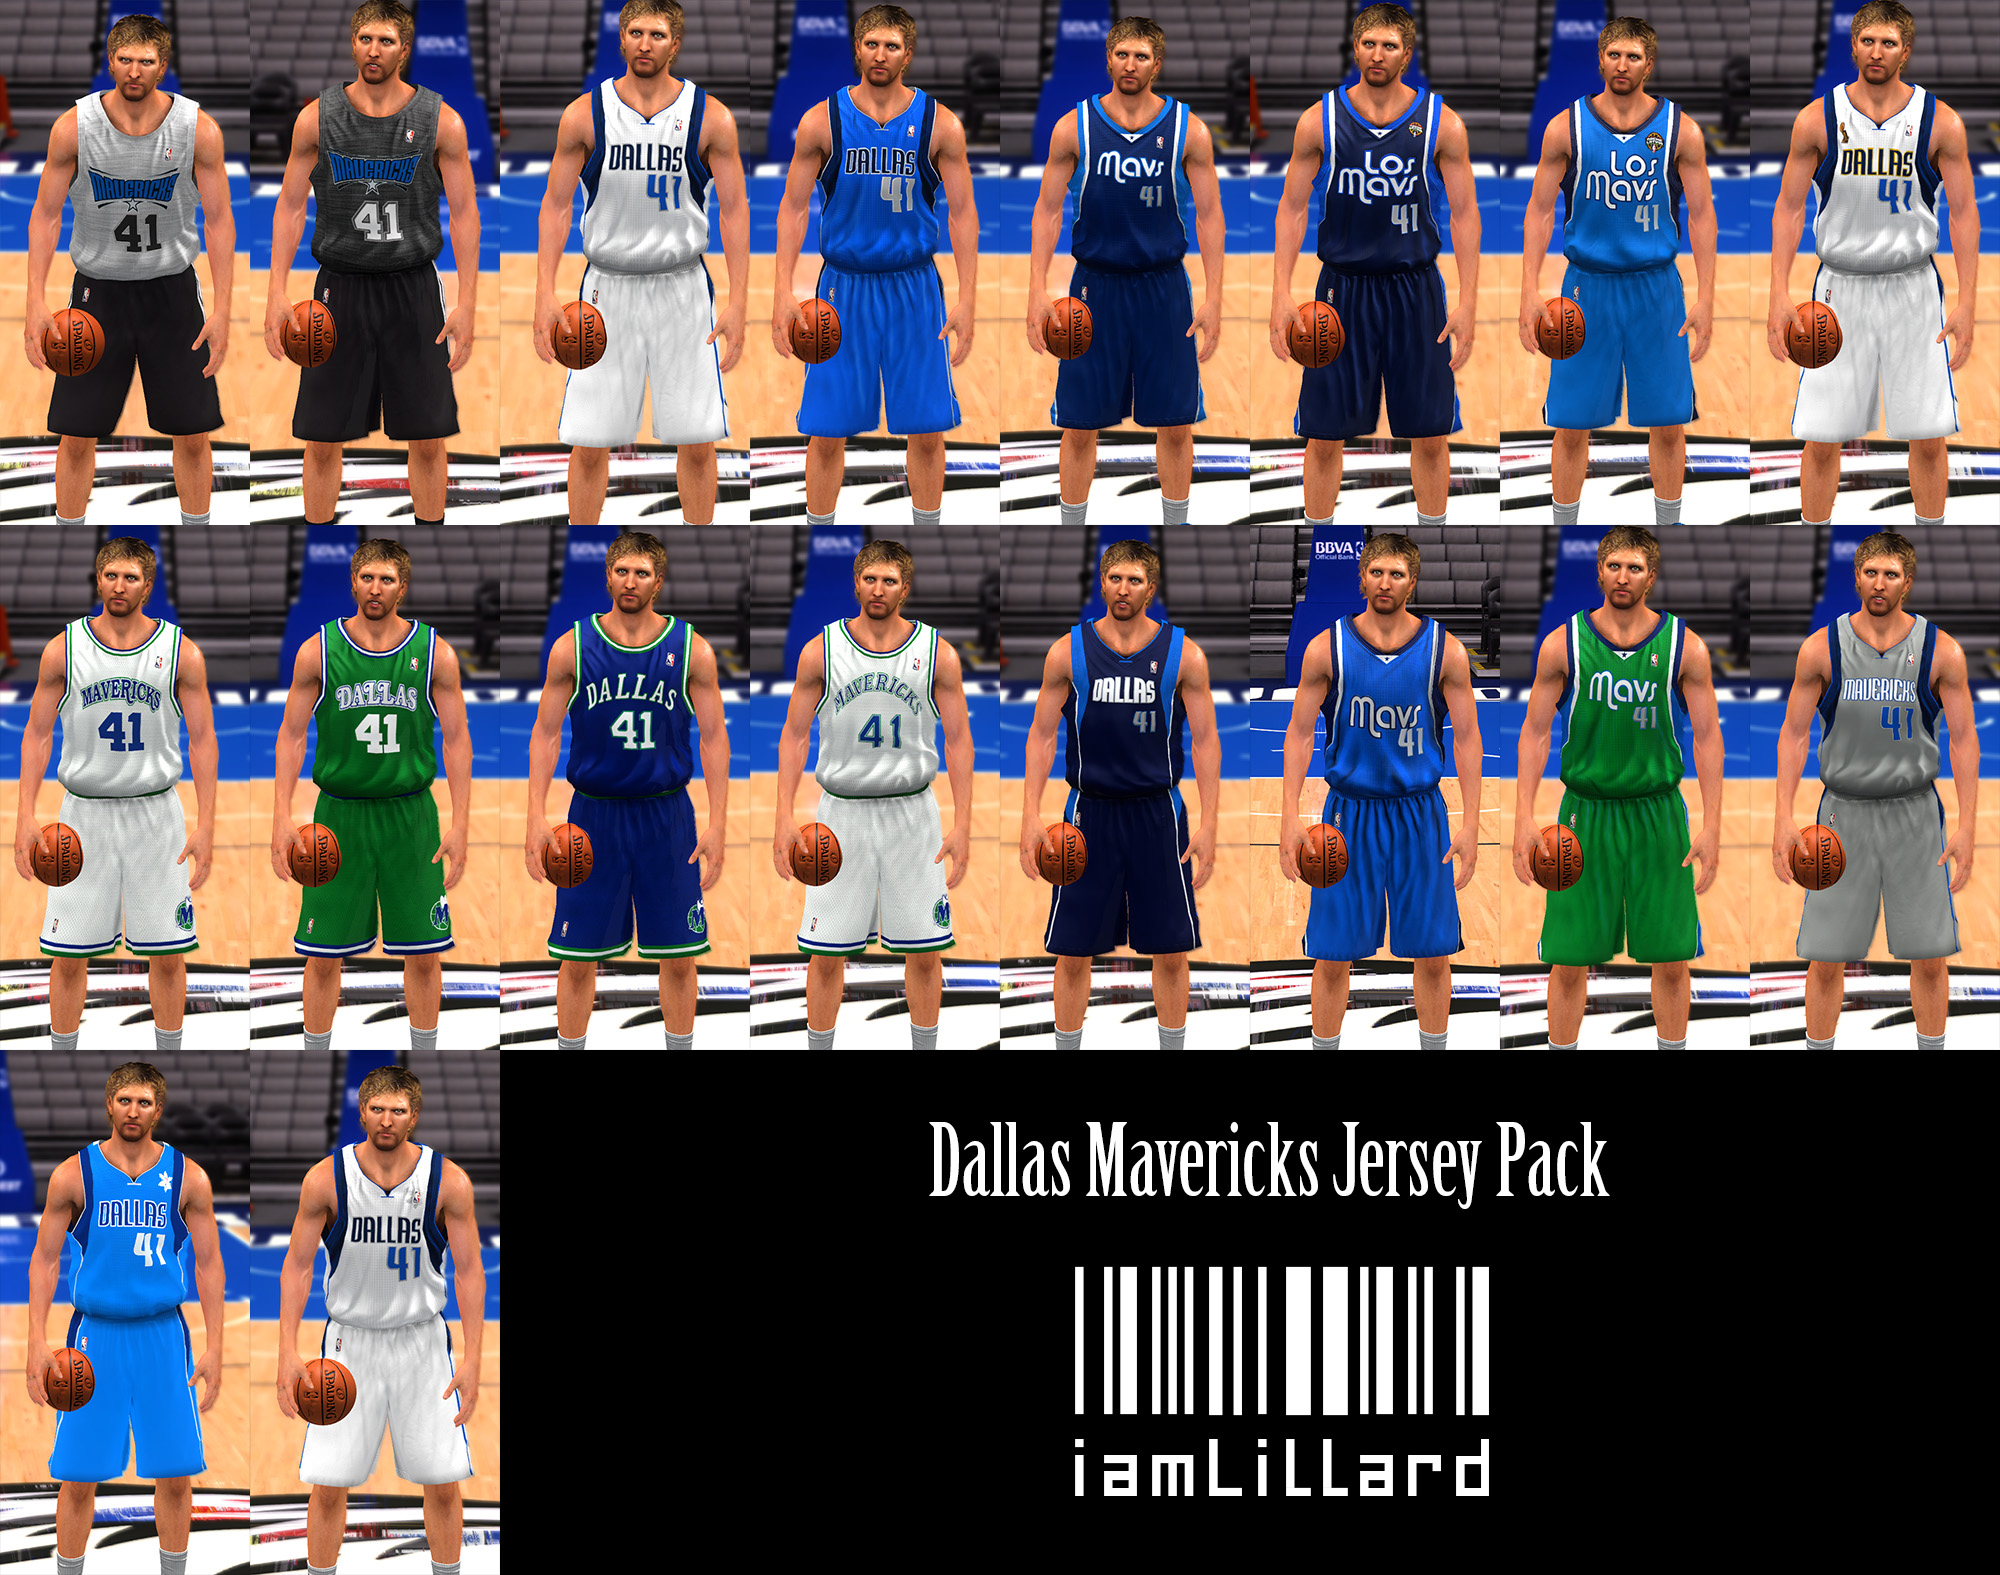 UJP Dallas Mavericks Jersey